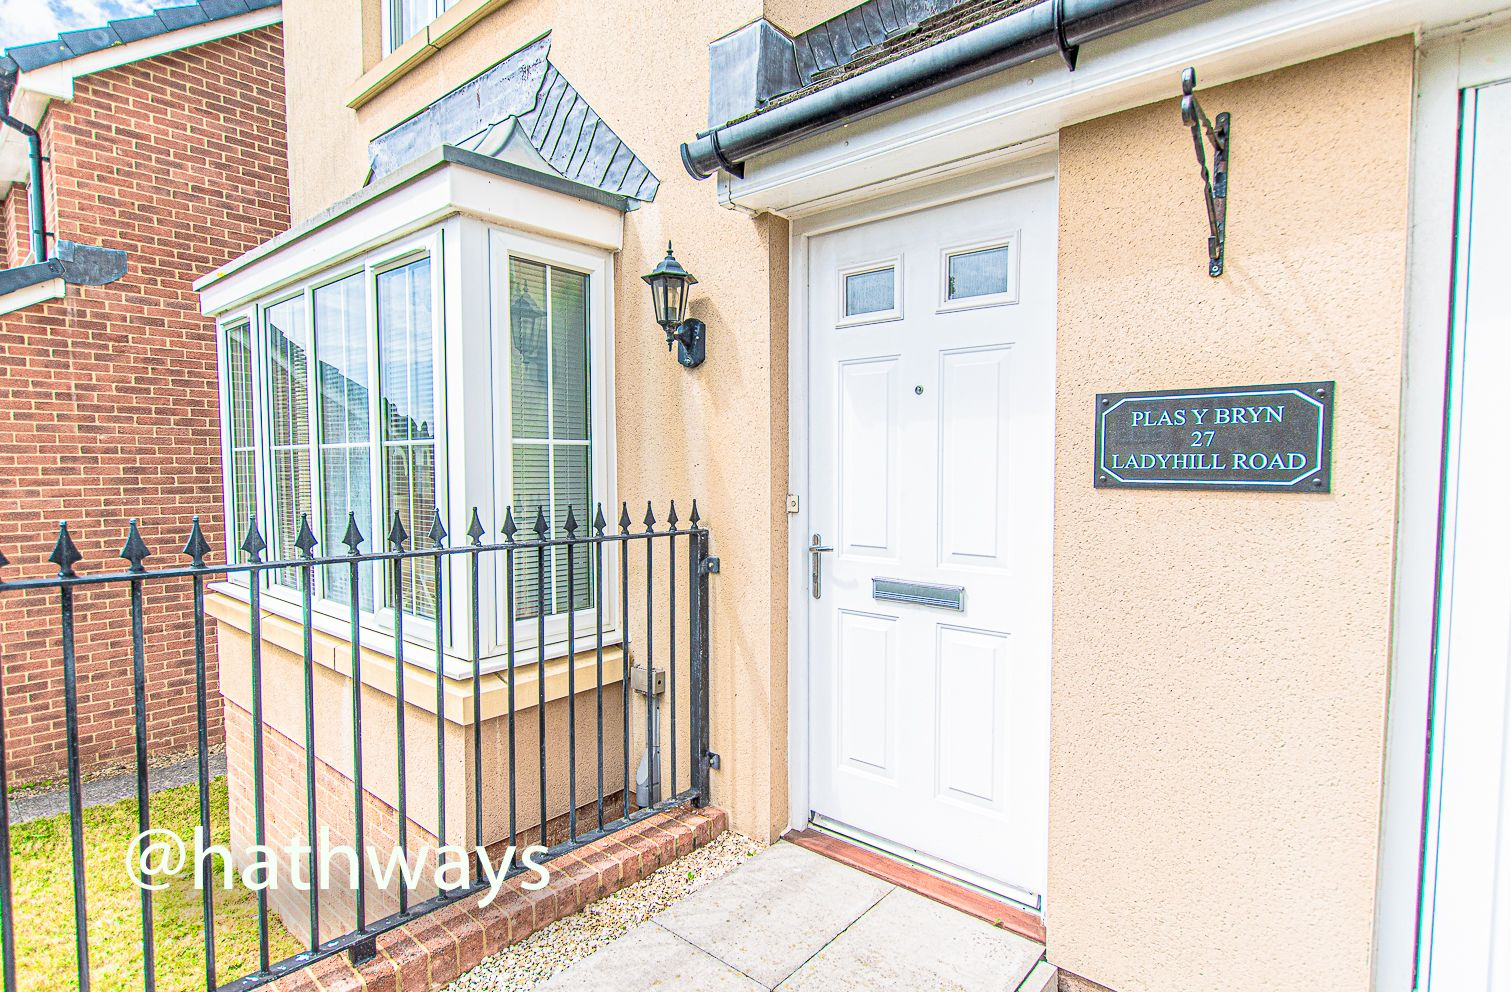 4 bed house for sale in Ladyhill Road  - Property Image 46